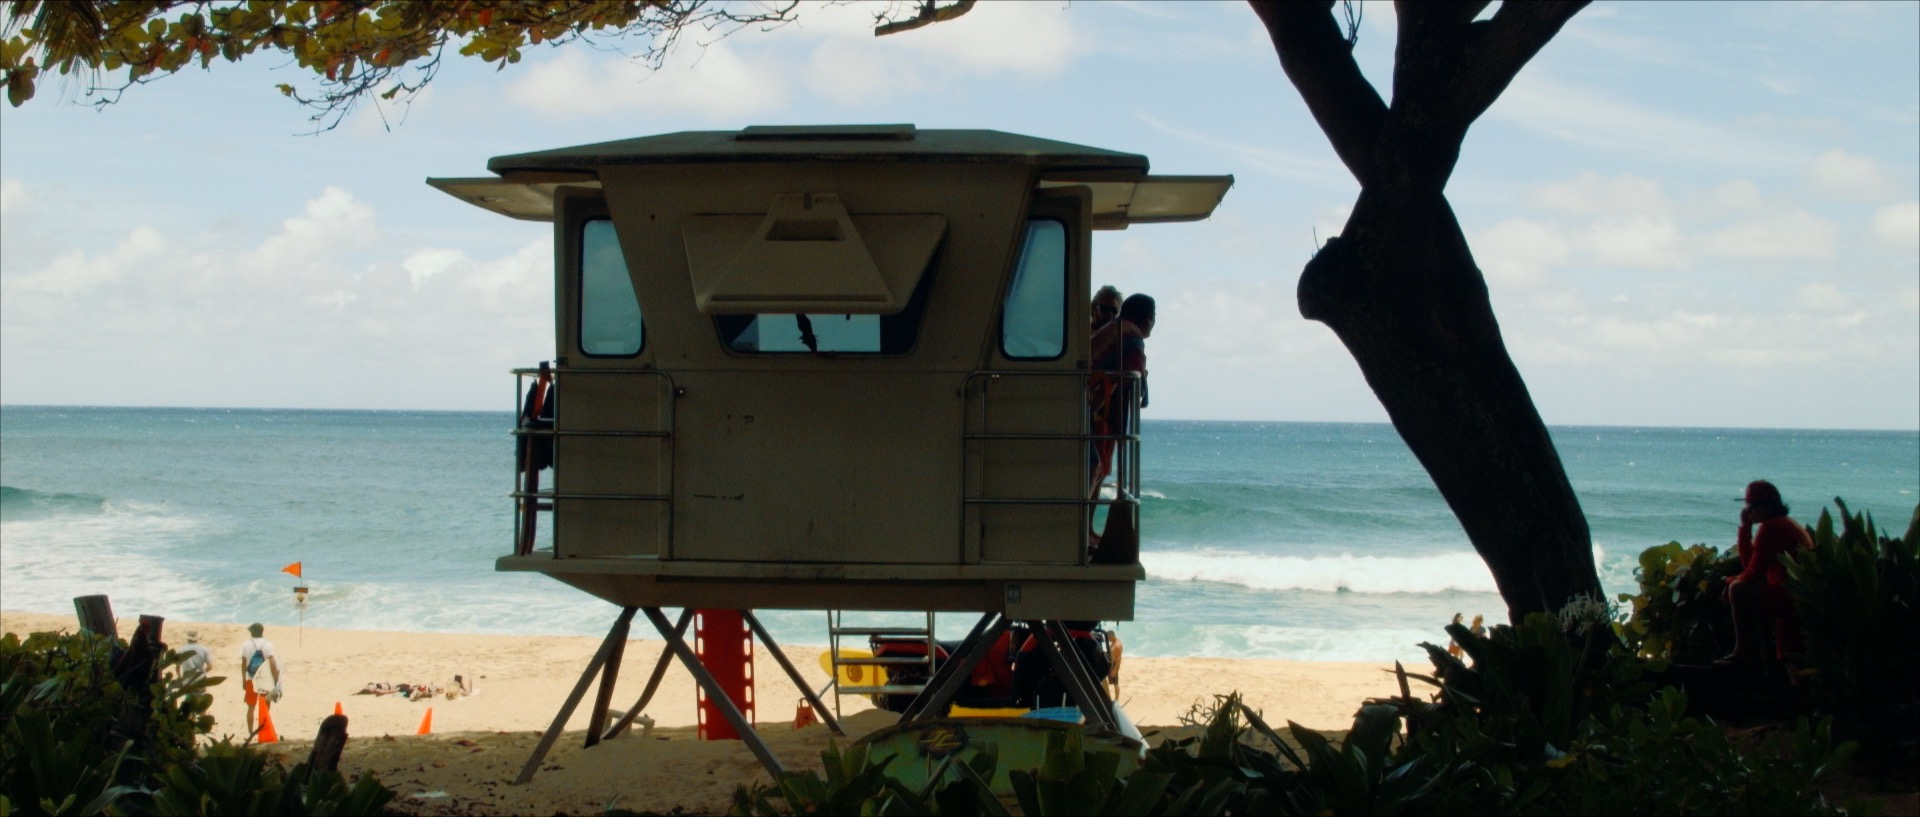 Hawaii Video frame 7.jpg